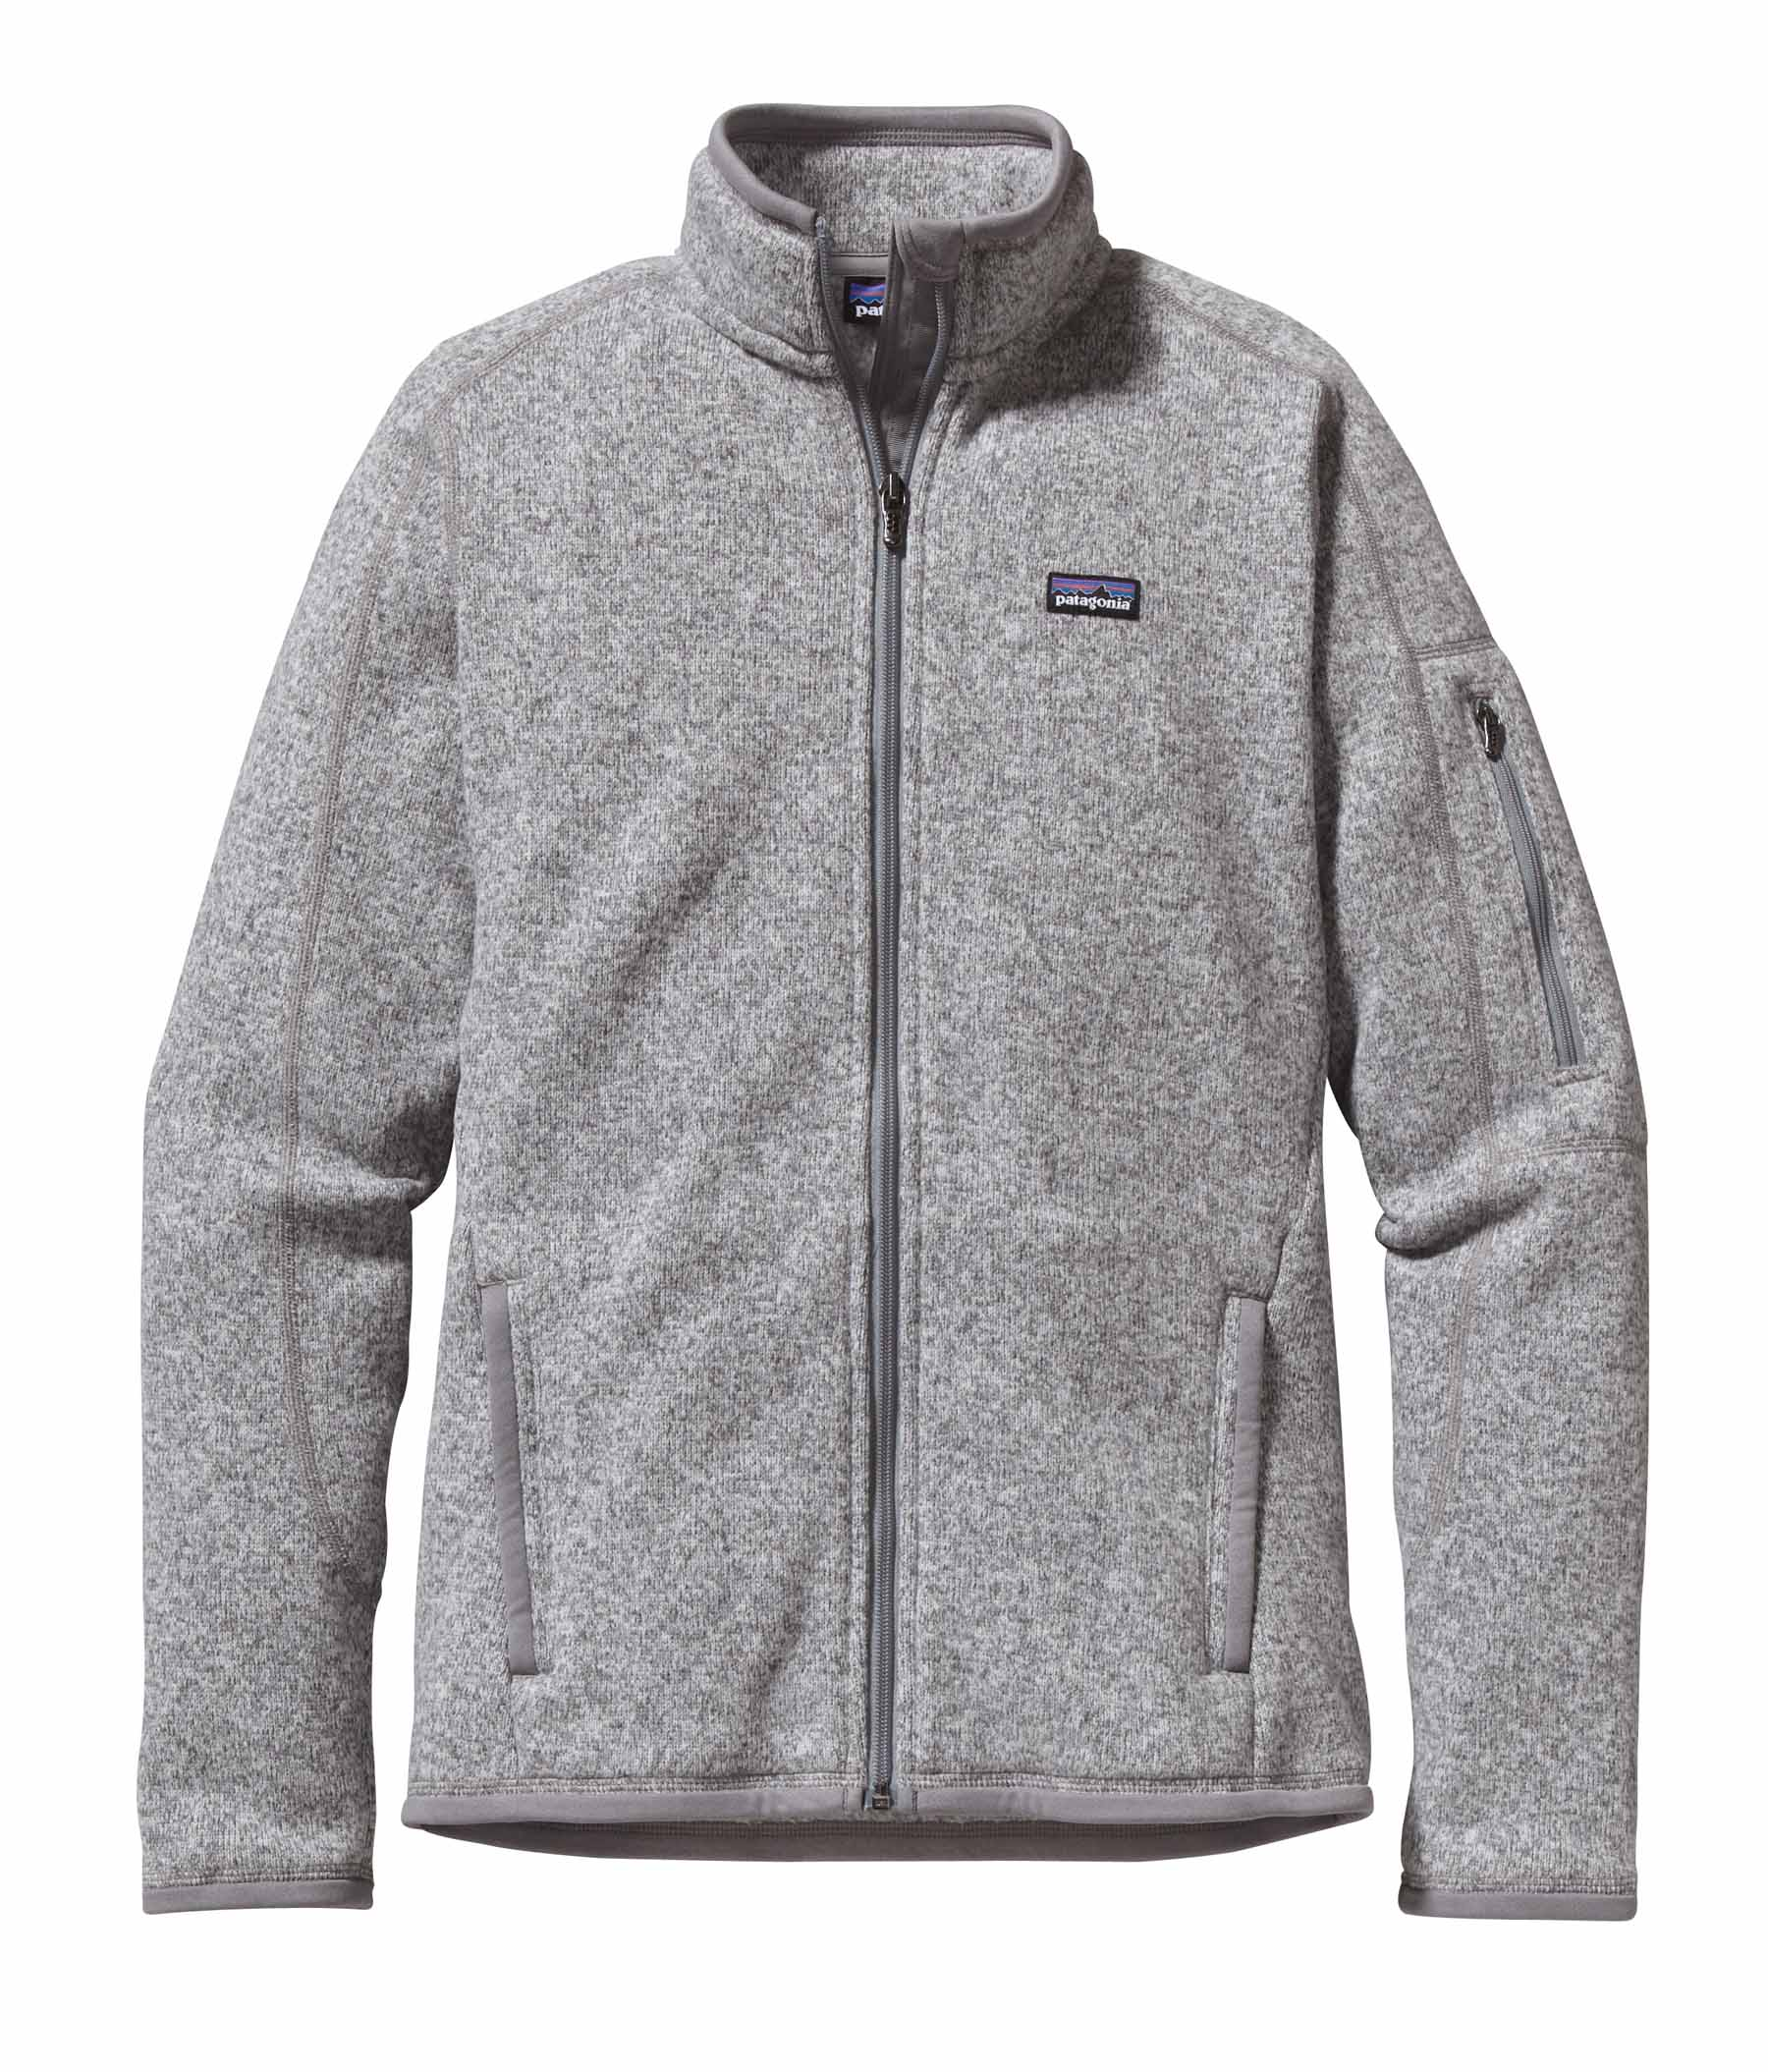 PATAGONIA W'S BETTER SWEATER JACKET  (25541)